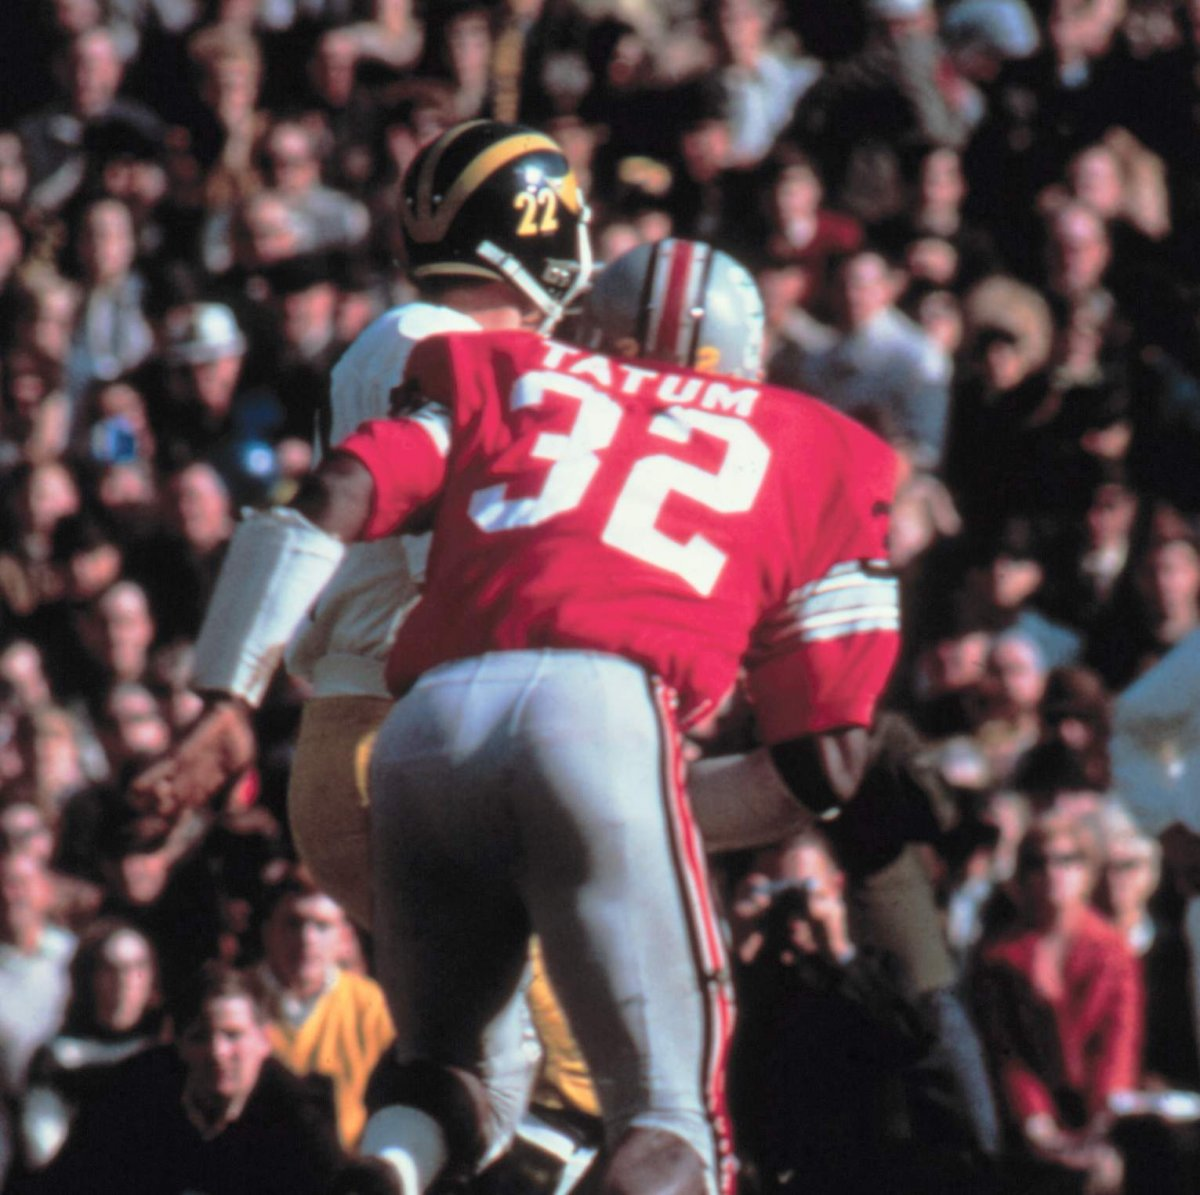 Jack Tatum against Michigan.